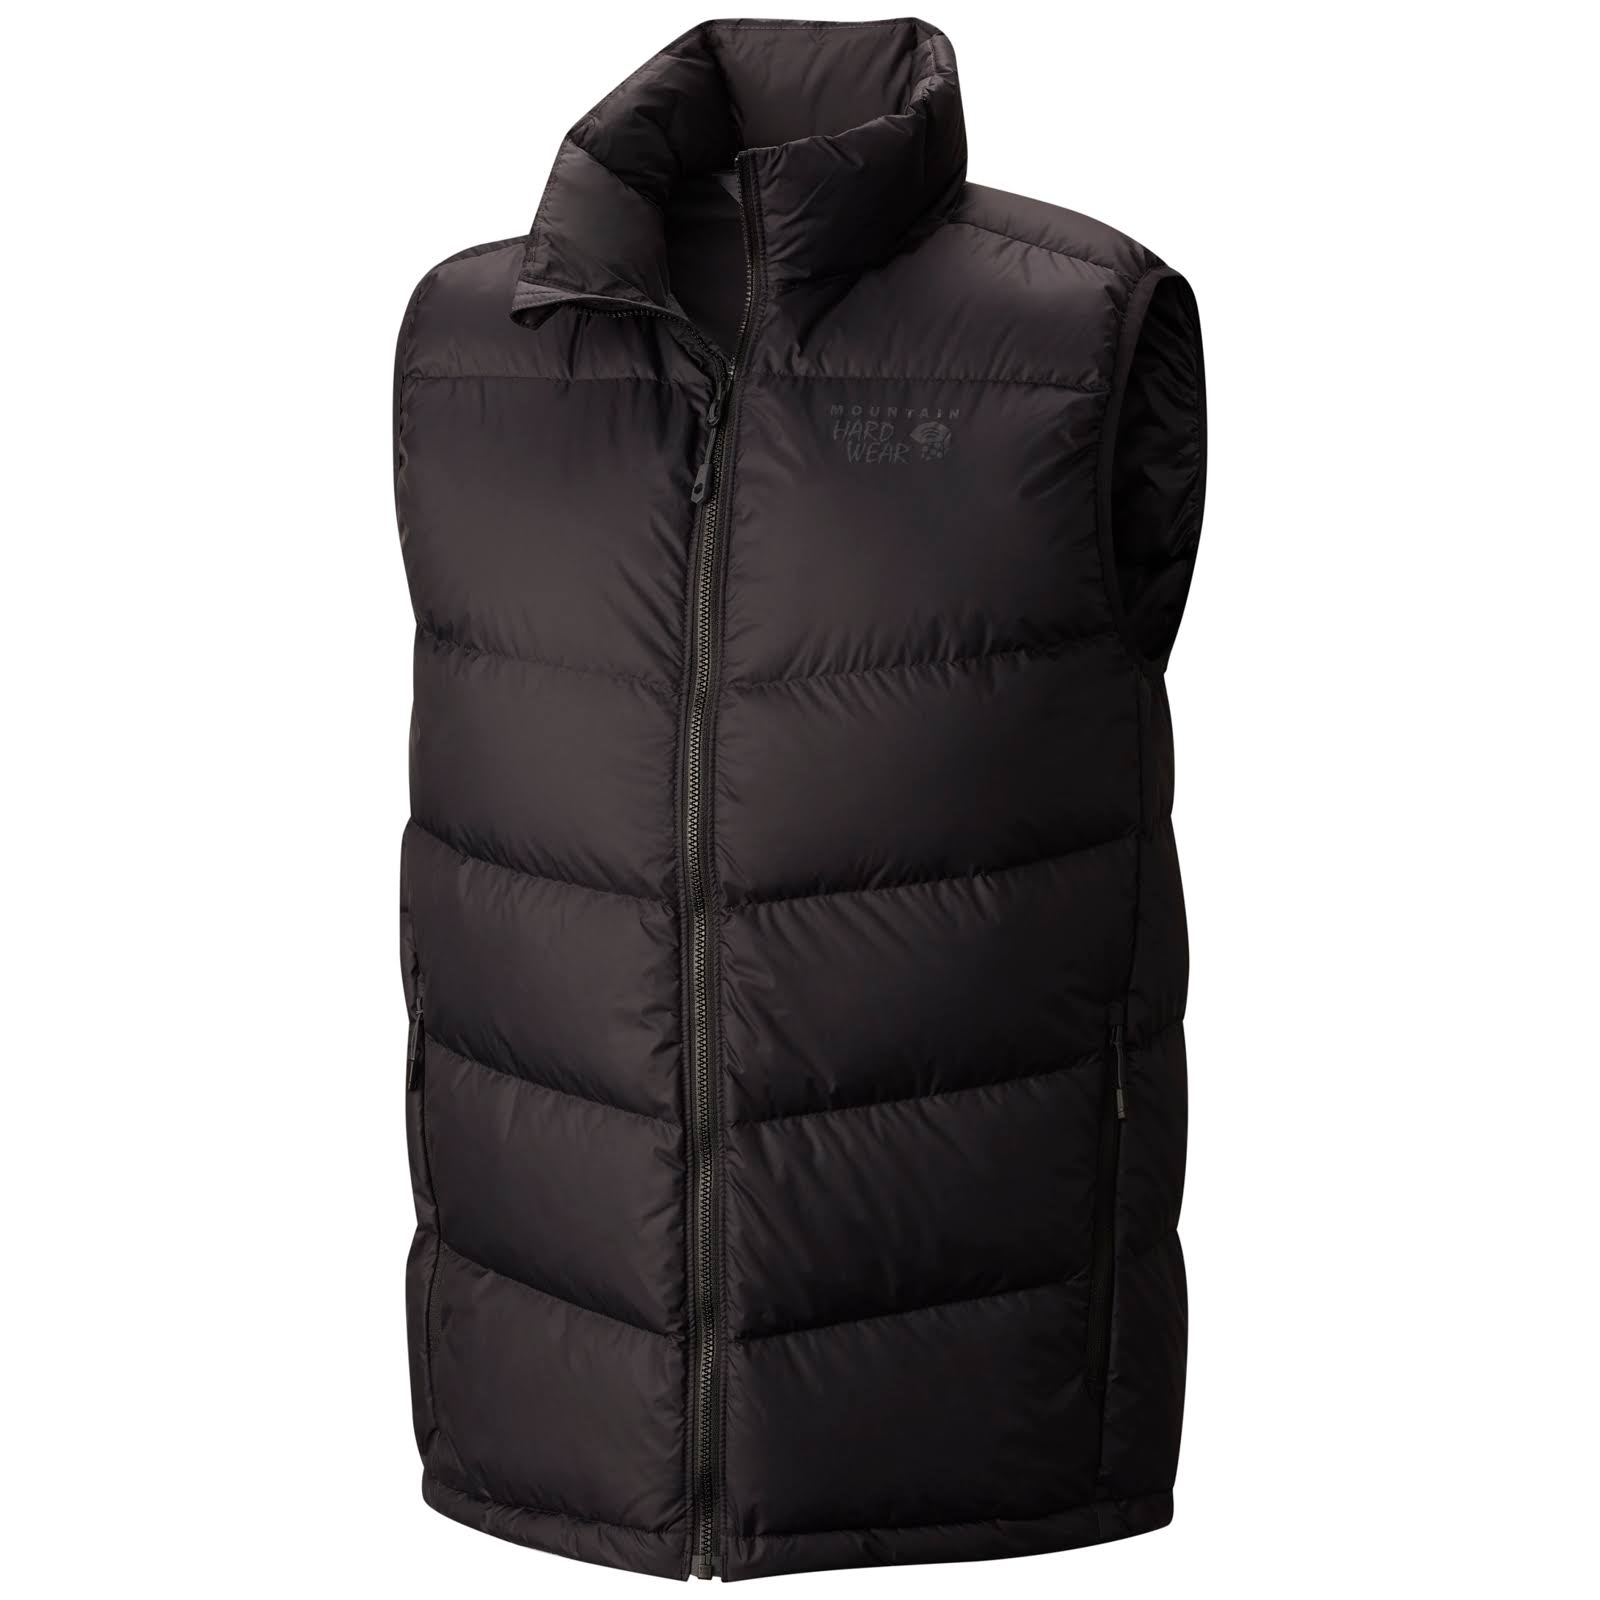 Mountain Hardwear: Men's Ratio Down Vest - Black